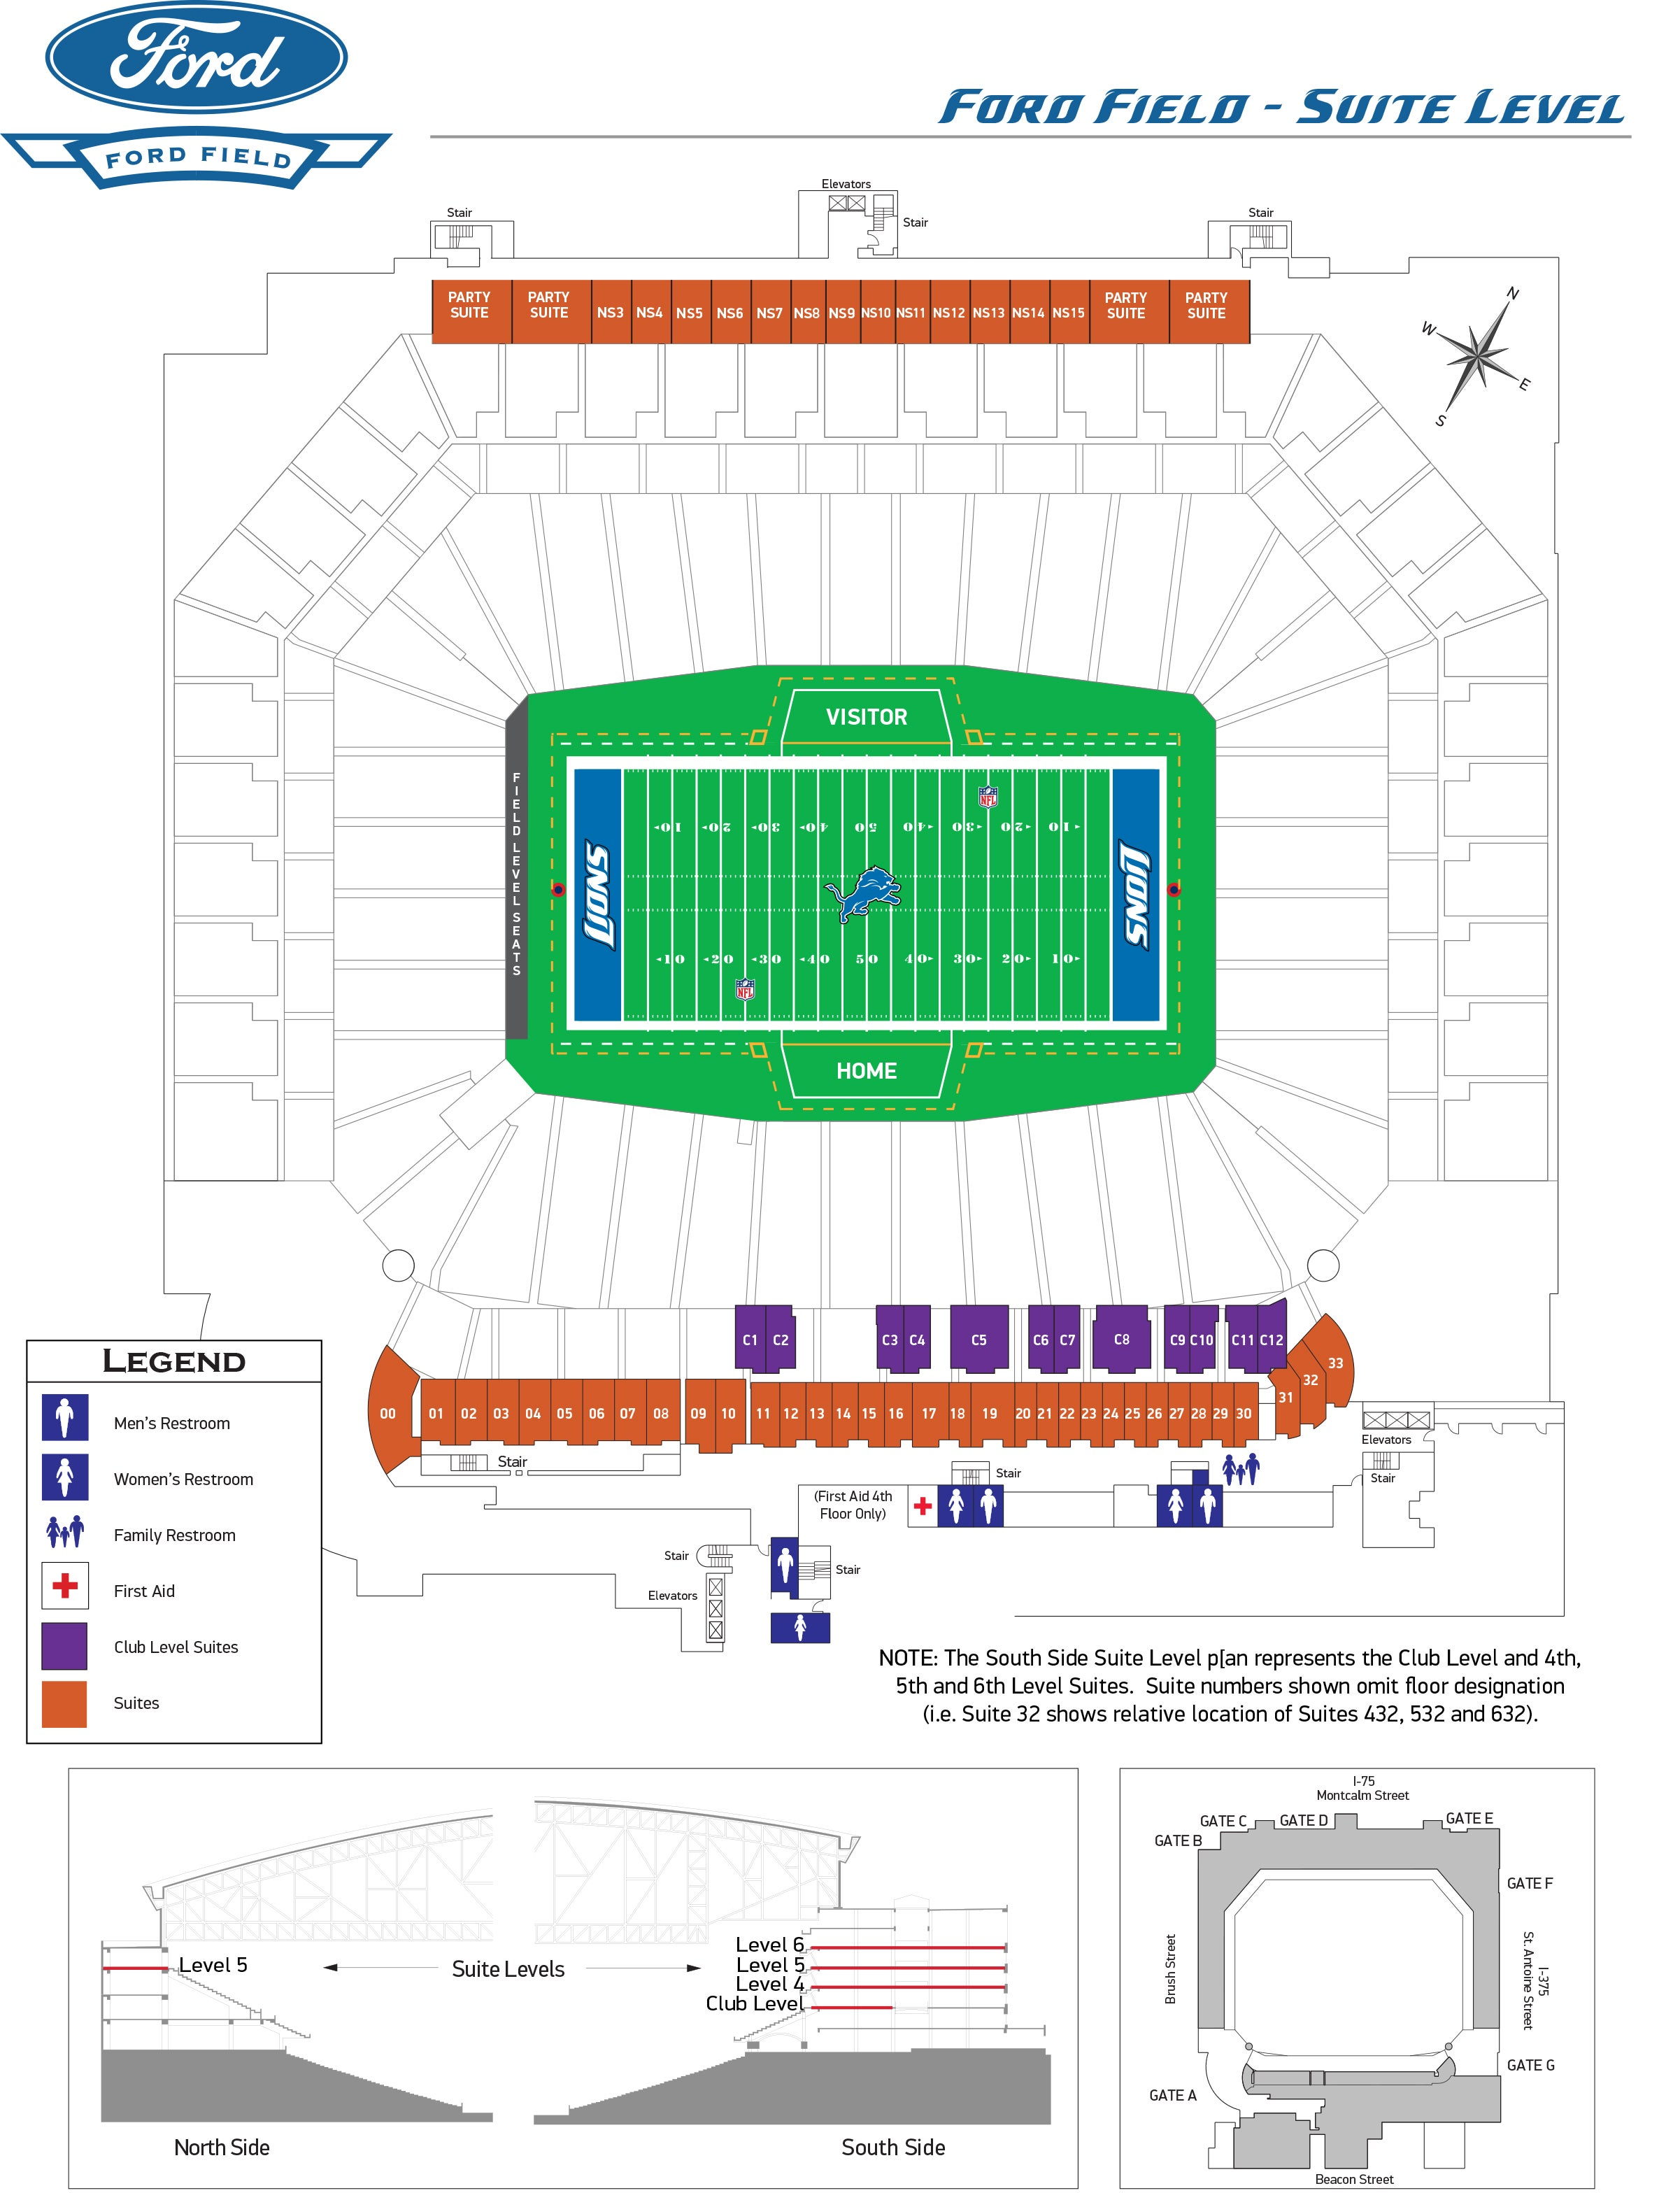 Ford-Field---Suite-Level-large-101316.jpg